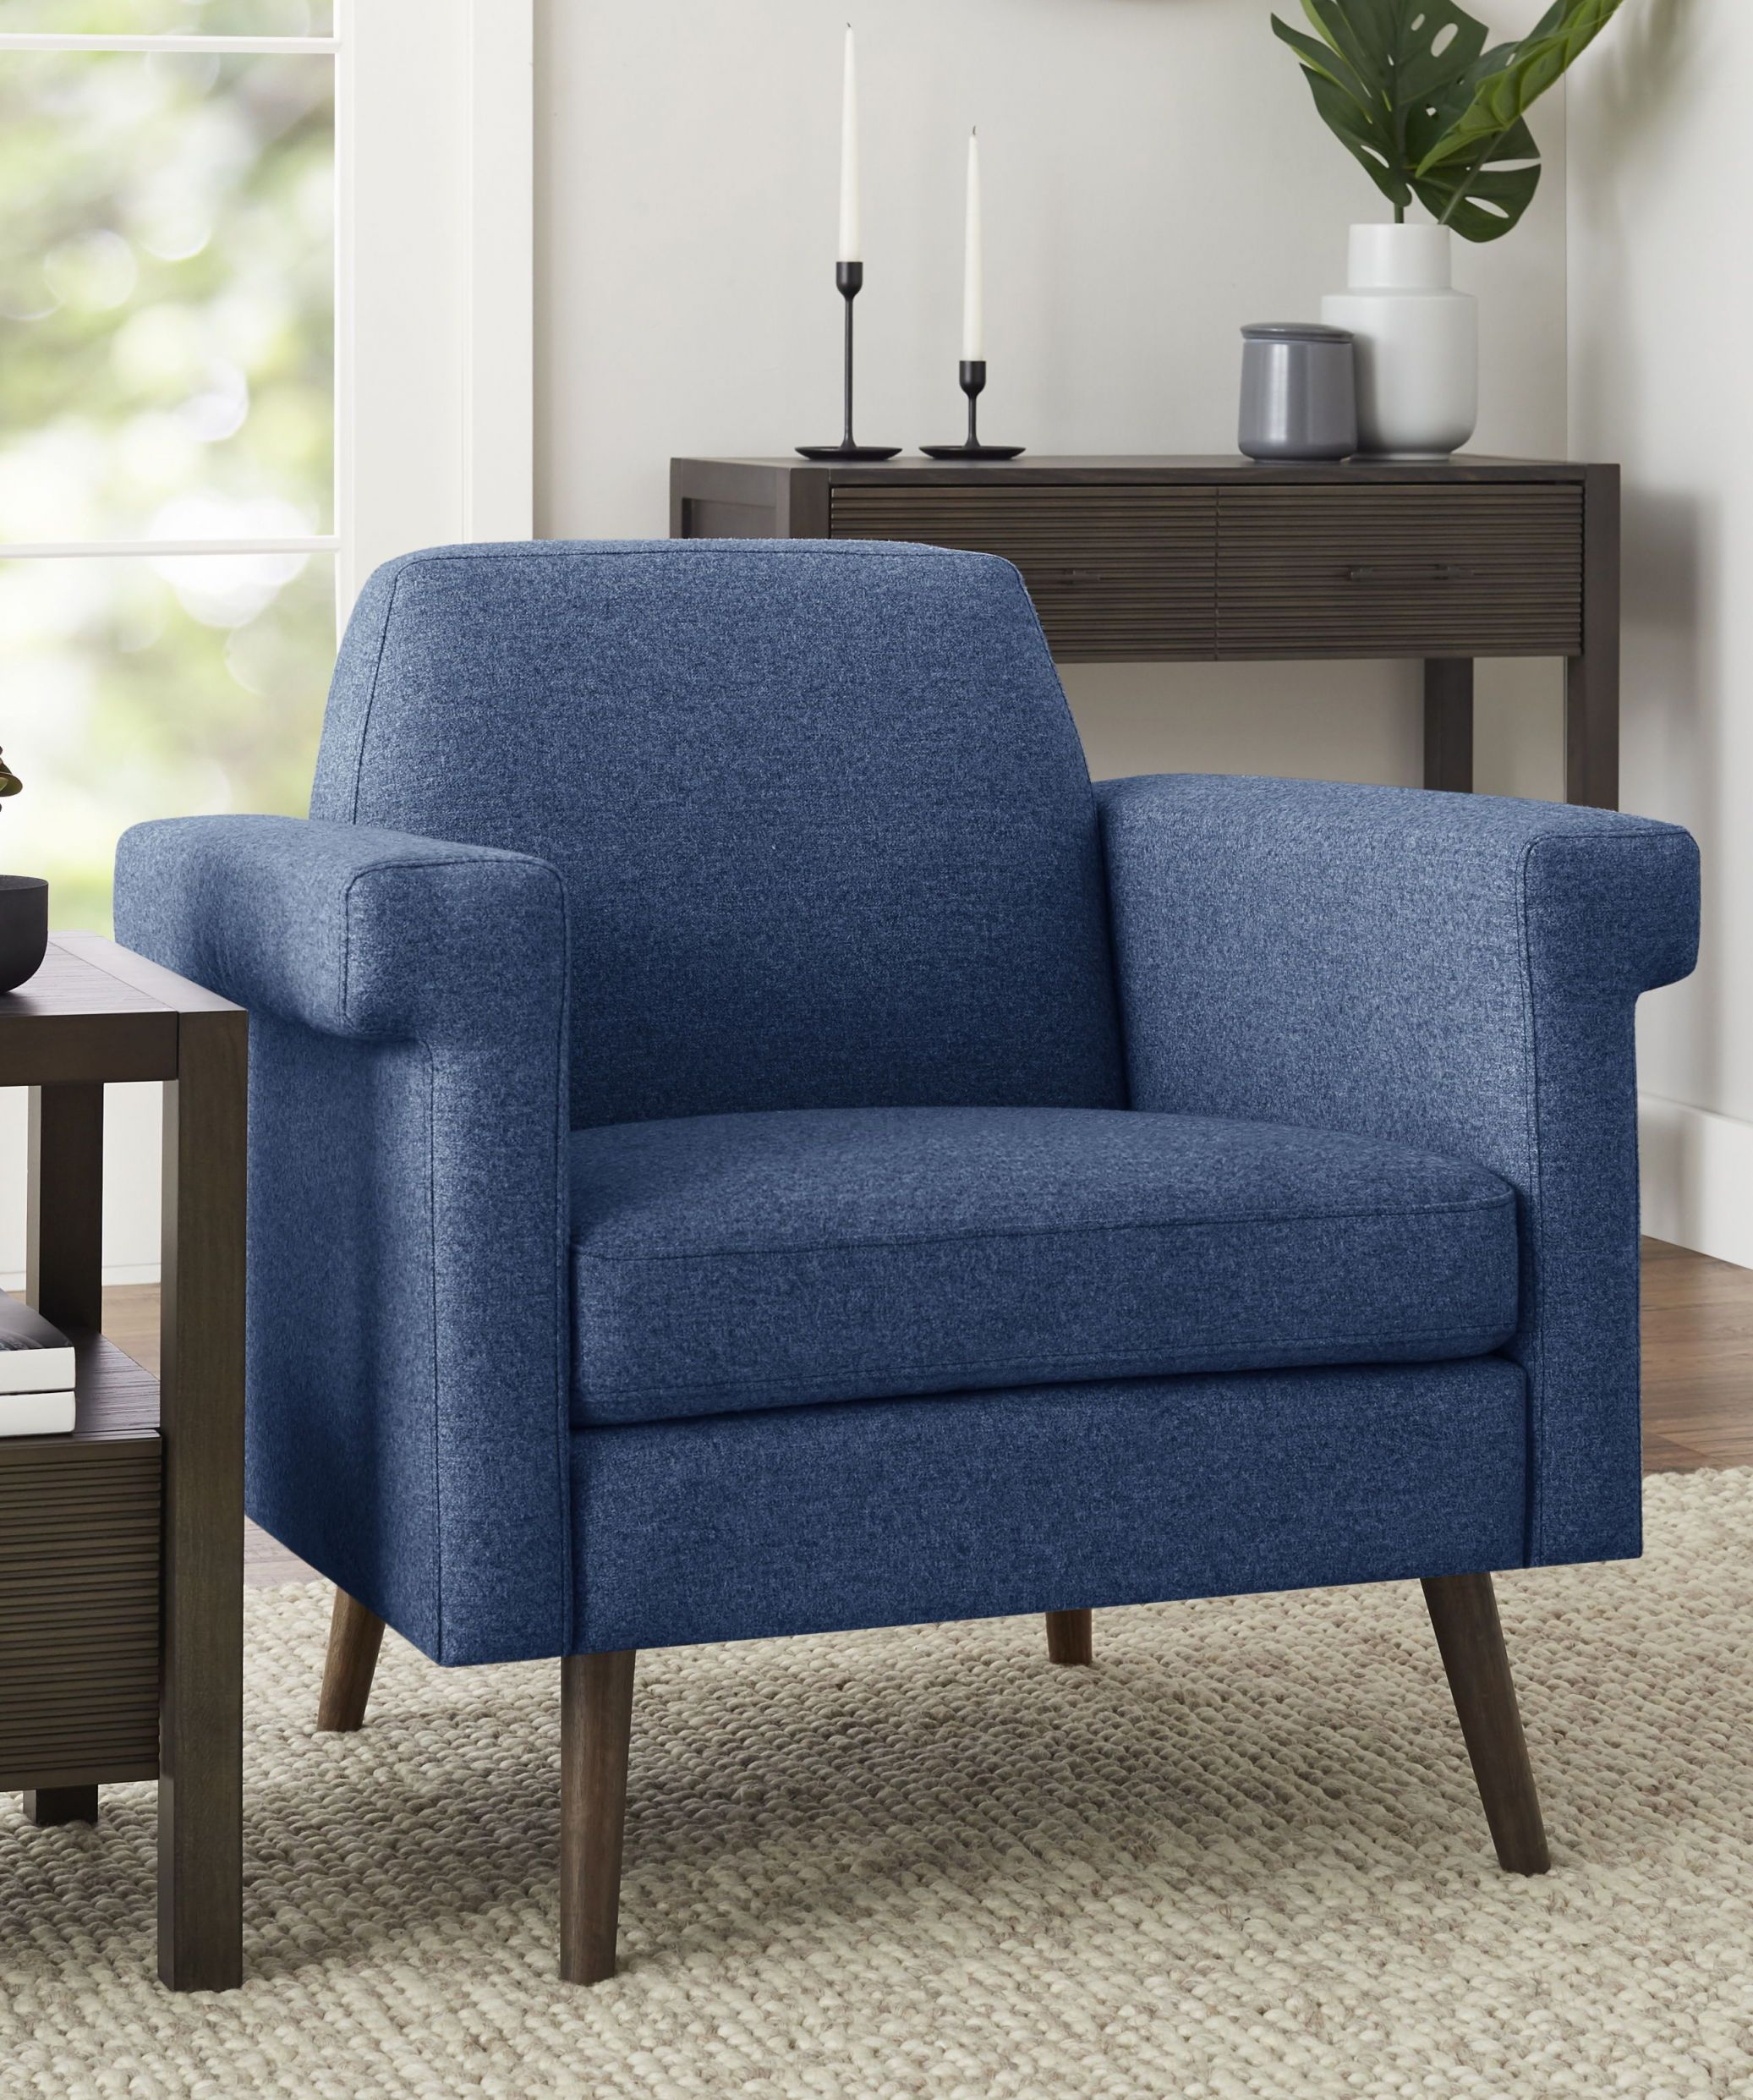 Better Homes & Gardens Remick Lounge Chair, Multiple Colors In 2019 intended for Lounge Chair Living Room Furniture